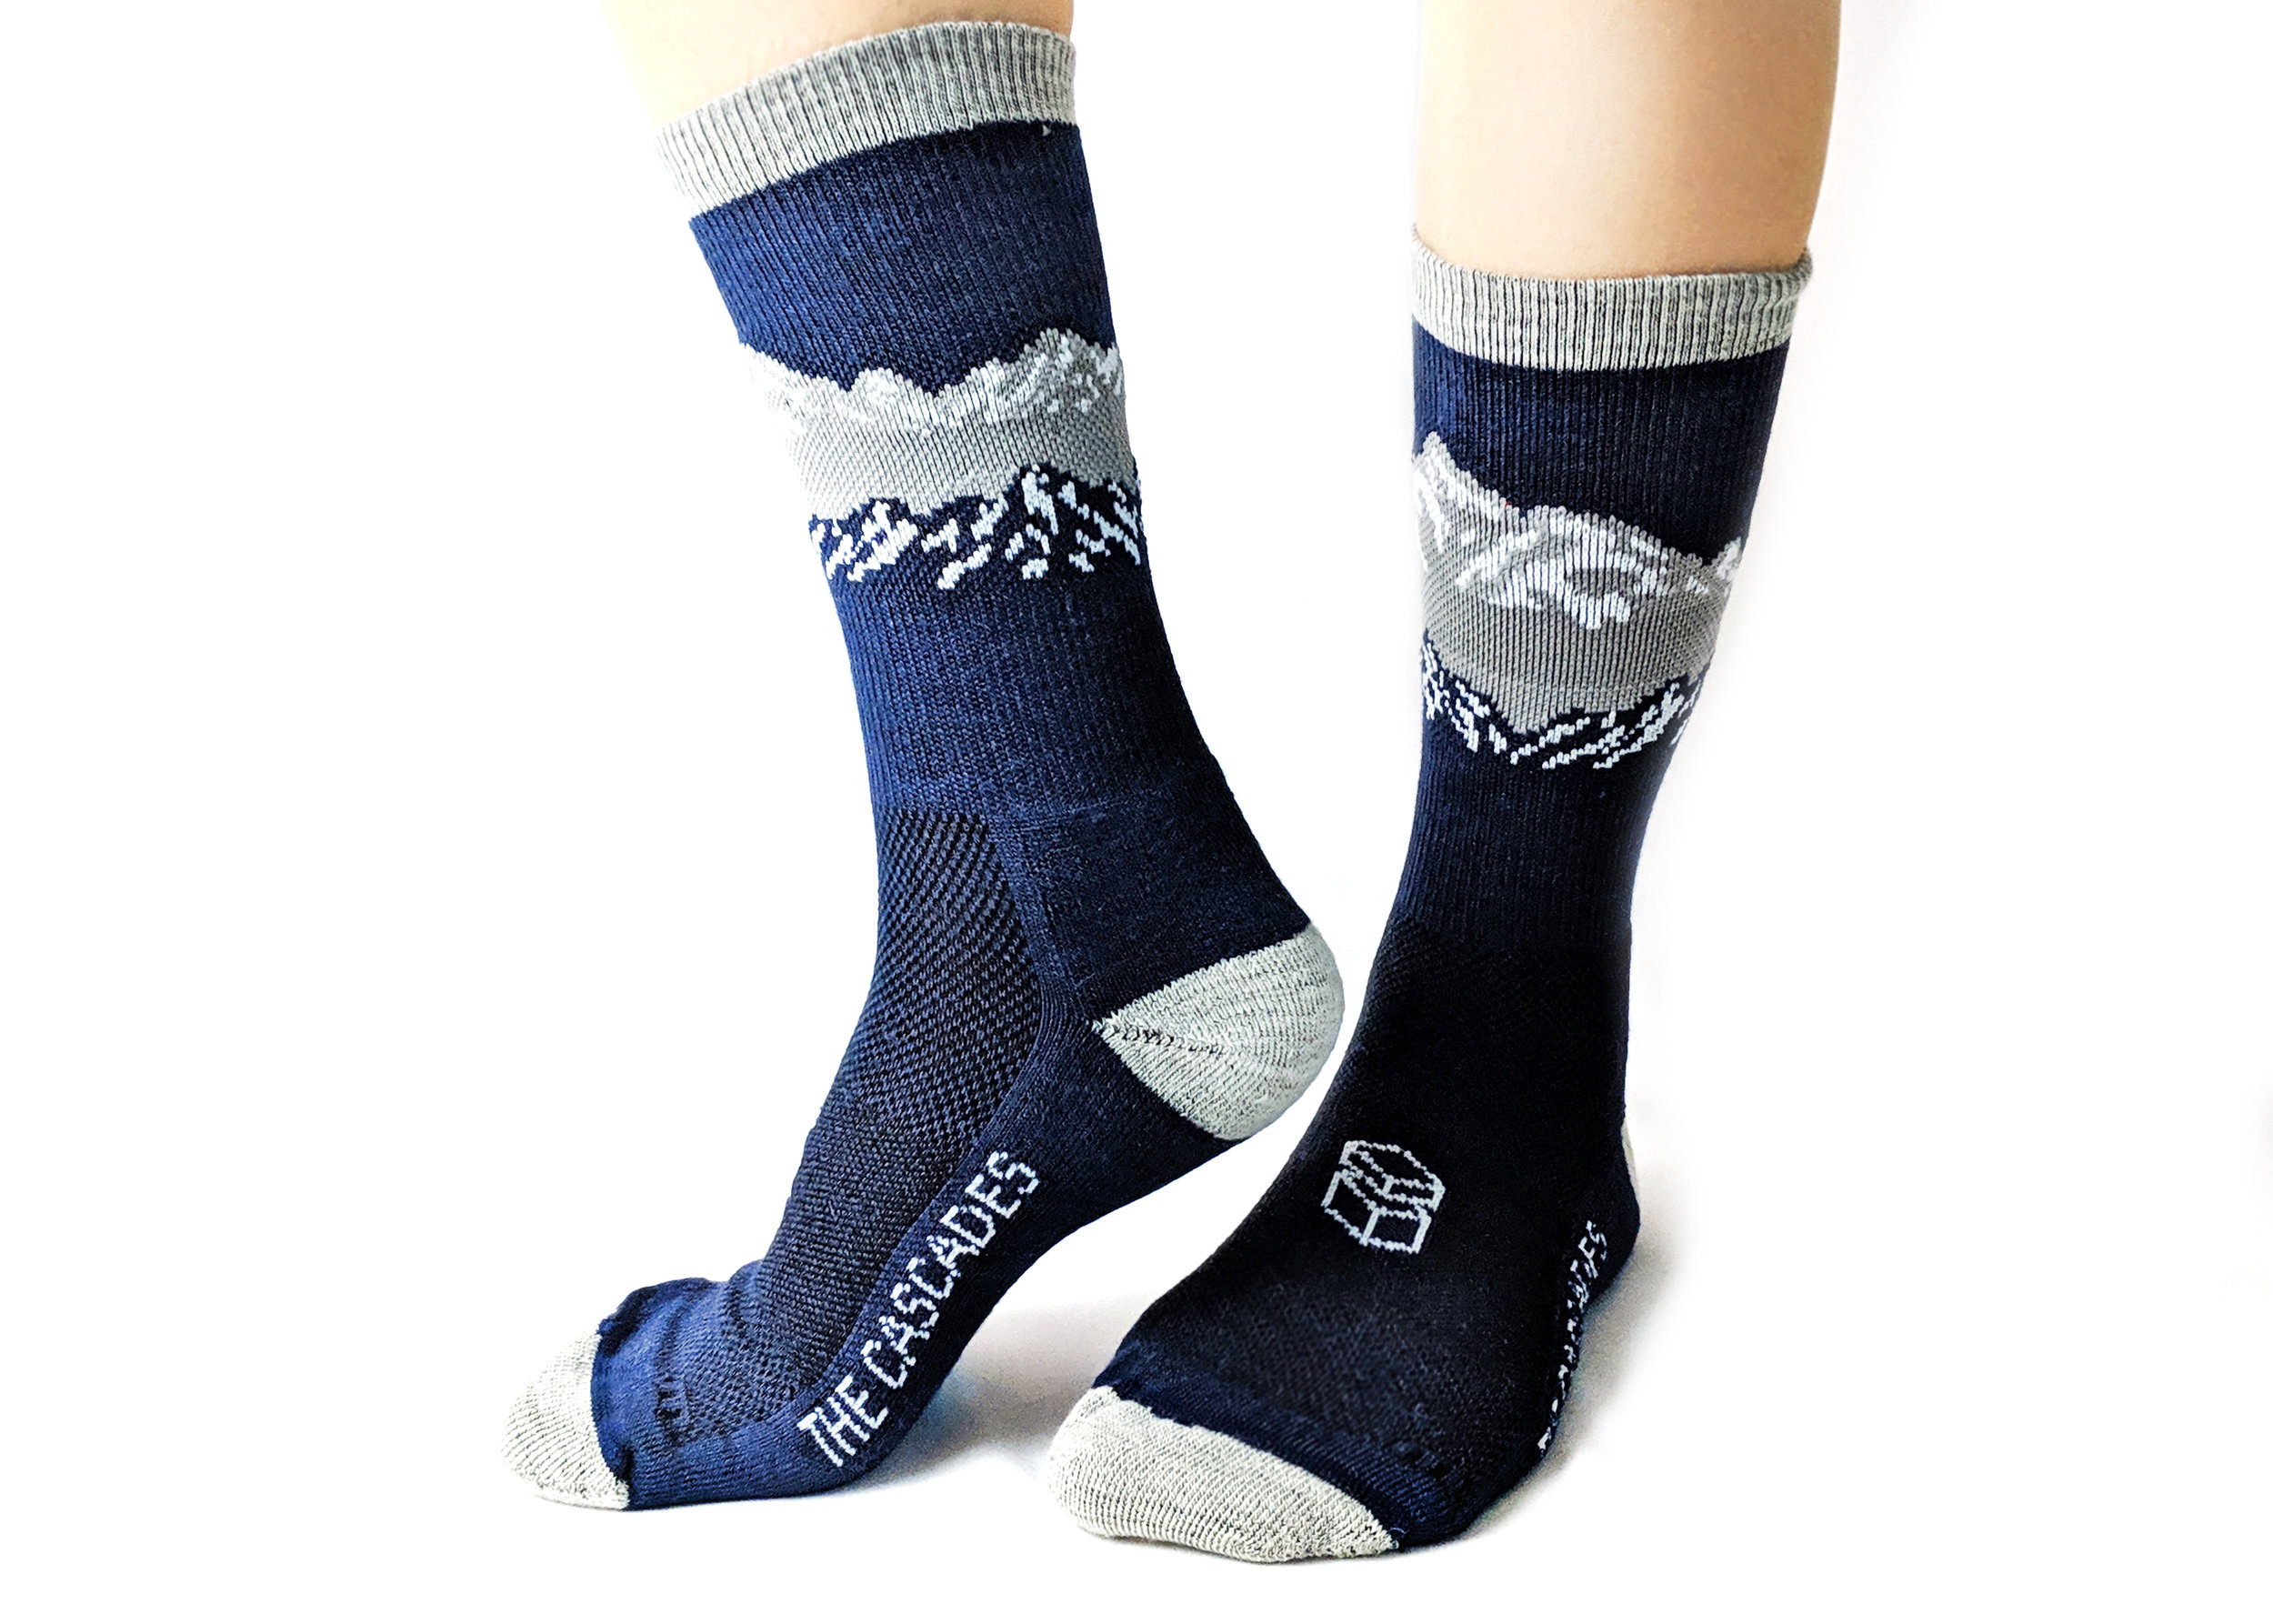 Solid blues, heathered greys & Merino wool yarns - make for a great hiking sock.